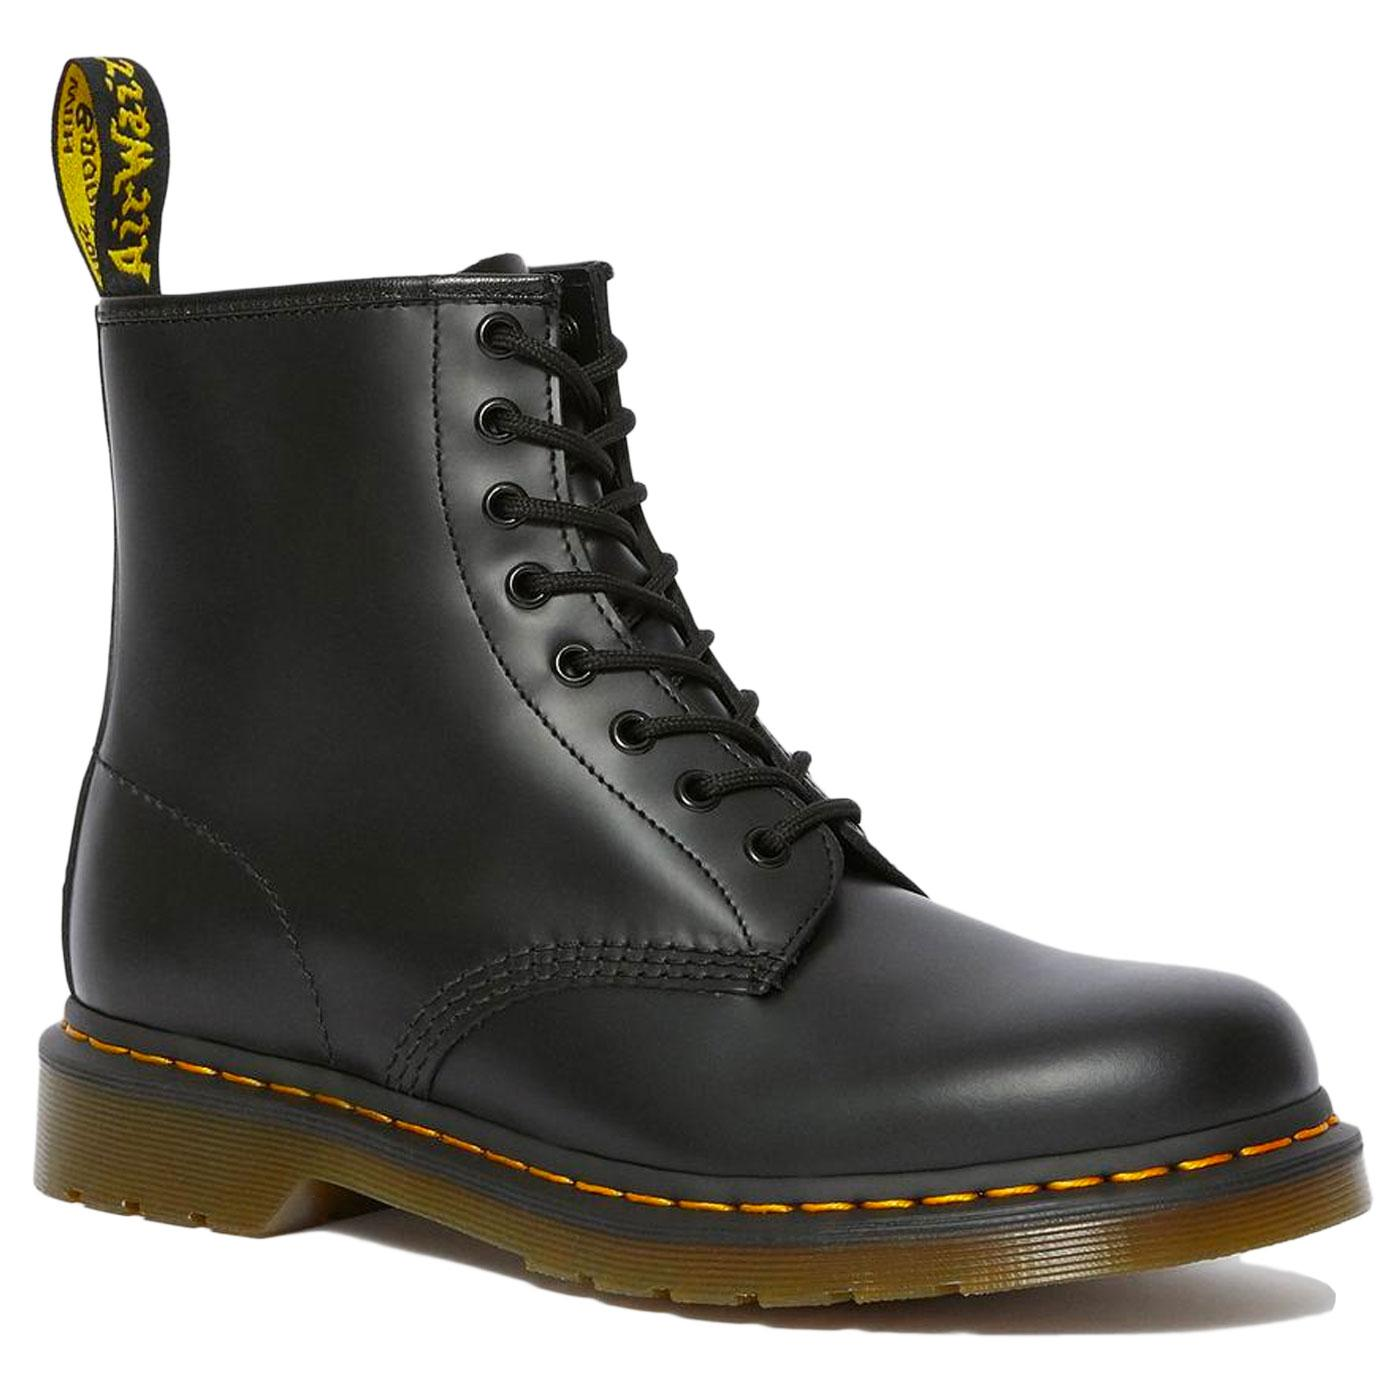 1460 Smooth DR MARTENS Women's Classic Boots